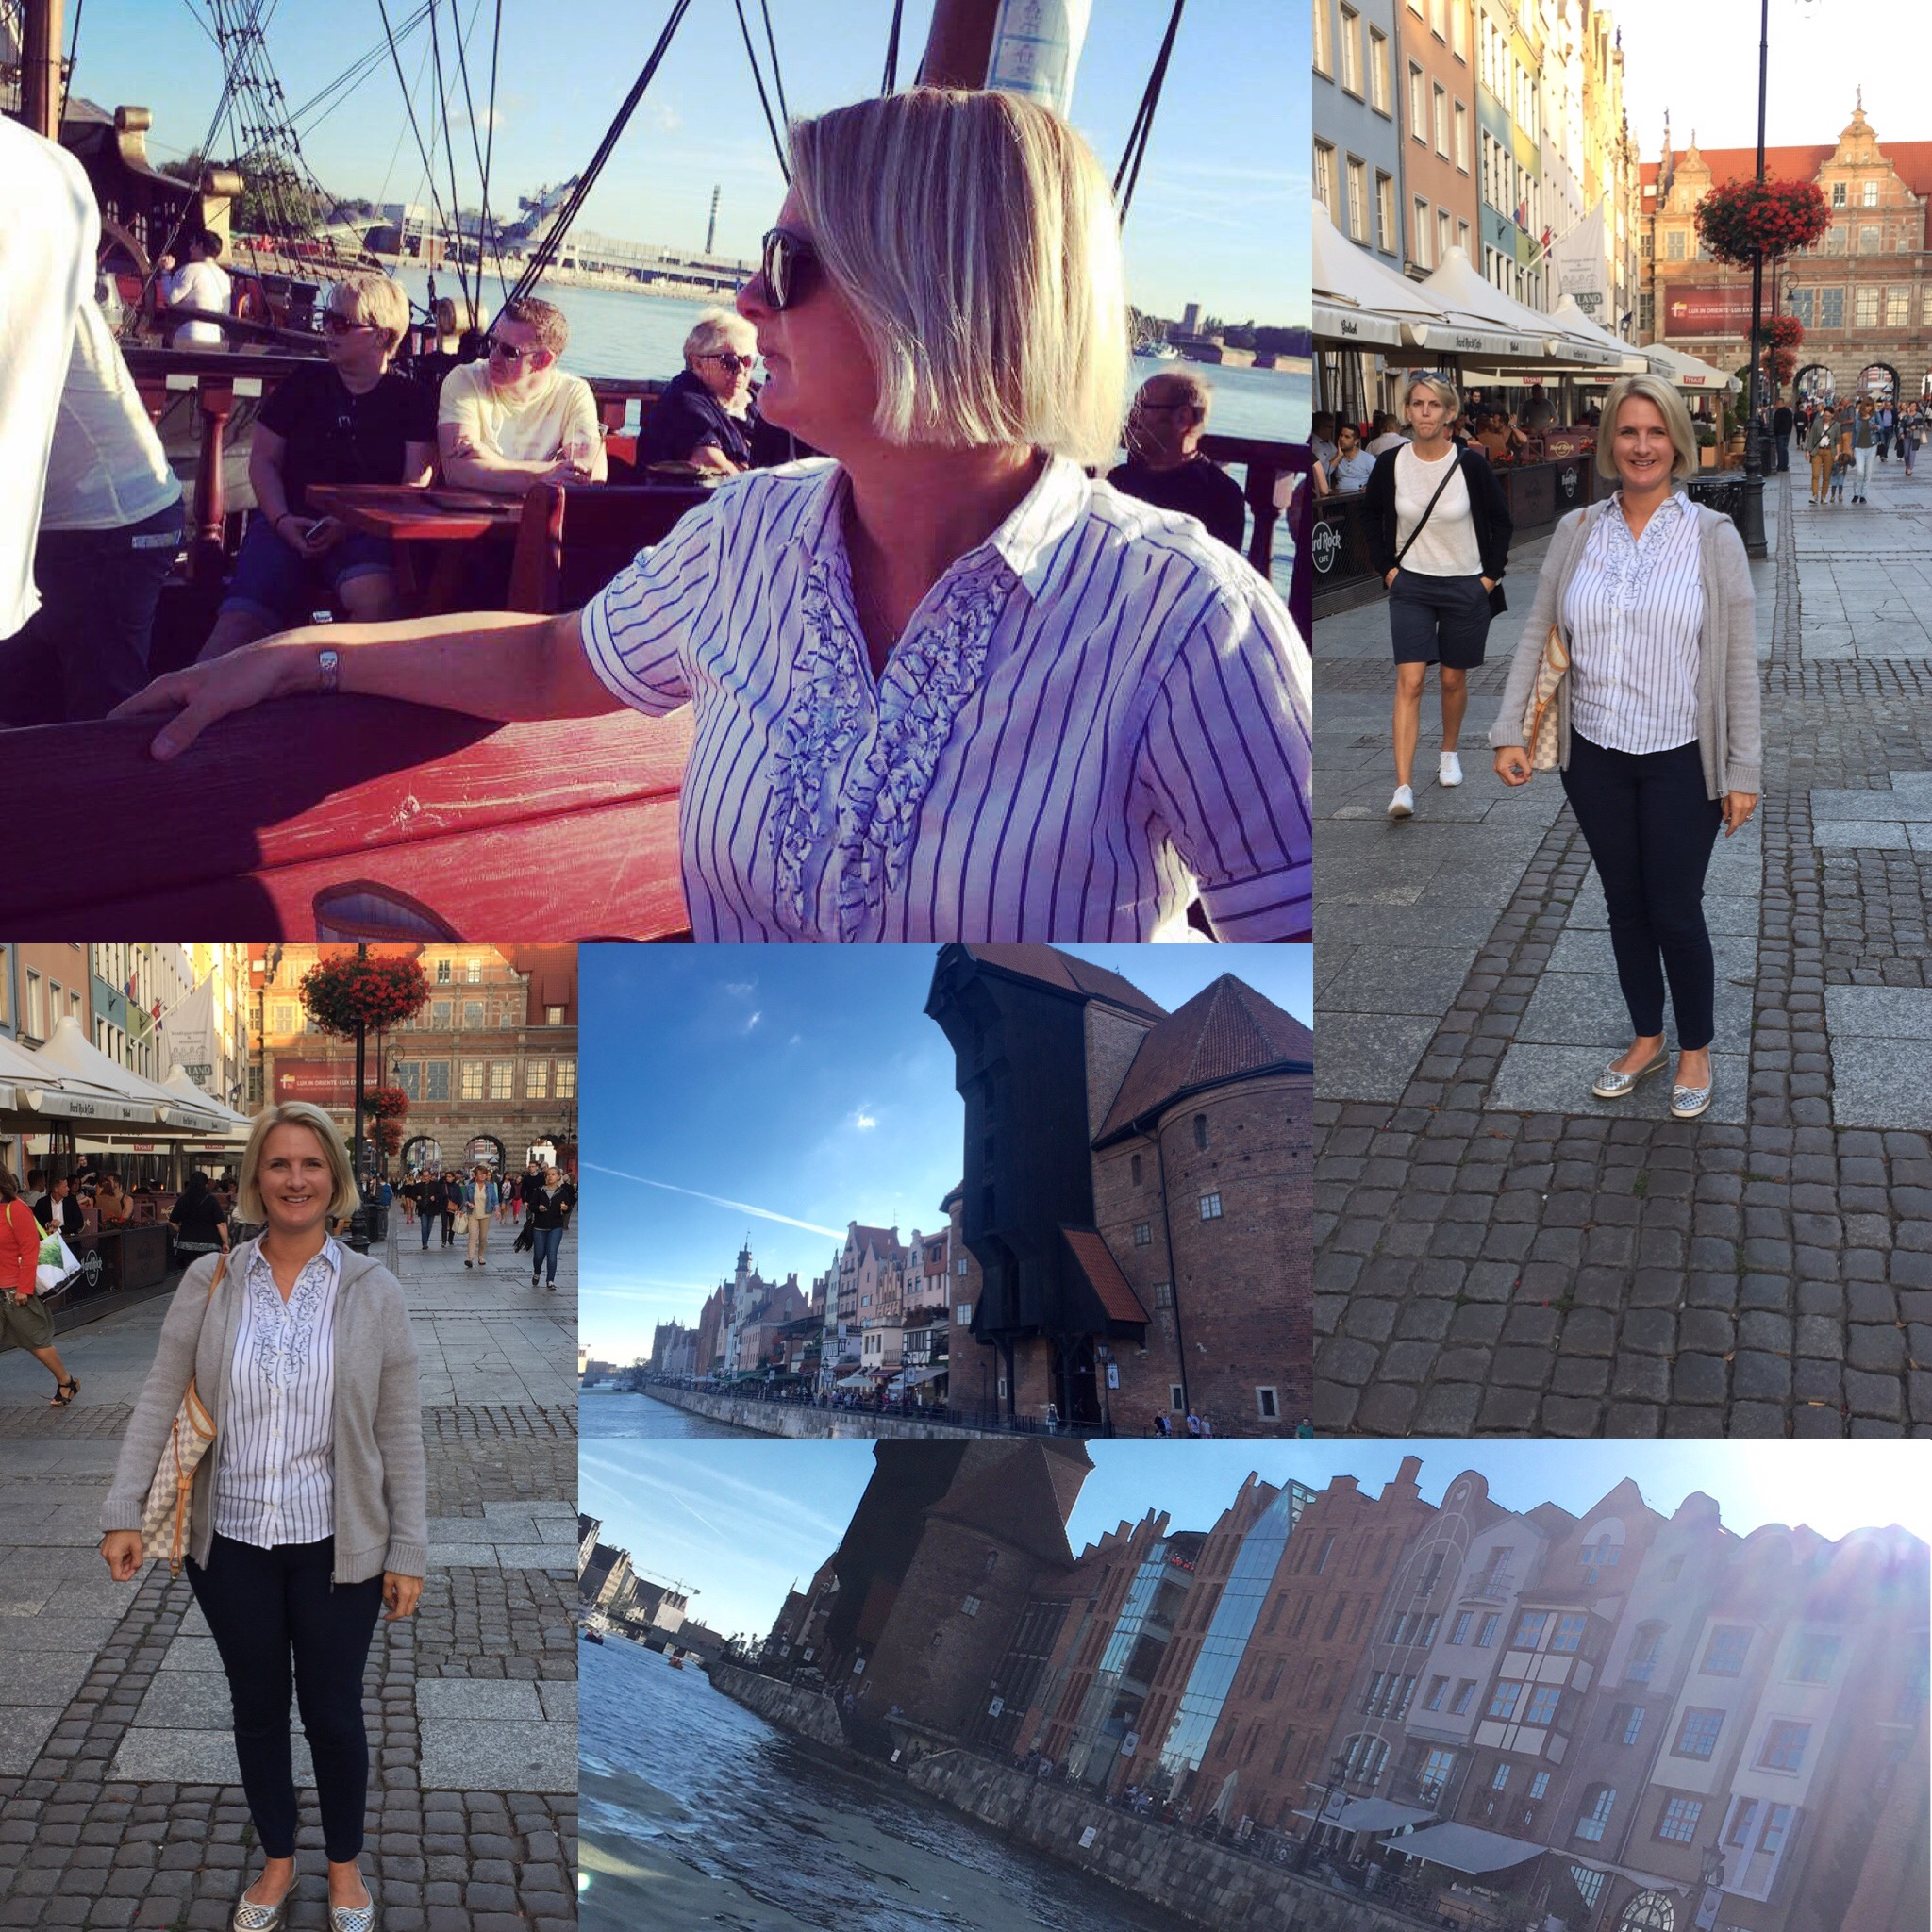 Gdansk is a stunning, stroll round this beautiful city taking in all the sights it has to offer plus take a trip down the river on a Galleon to Westerplatte, The landing point at which WW2 broke out.  ABOVE; Cardigan from TK Maxx, Blouse from Gant, Trousers from Primark, Shoes from Tory Burch, Bag from LV.  BELOW; Jumper from The White Company, Trousers from Next, Shoes from Tory Burch.